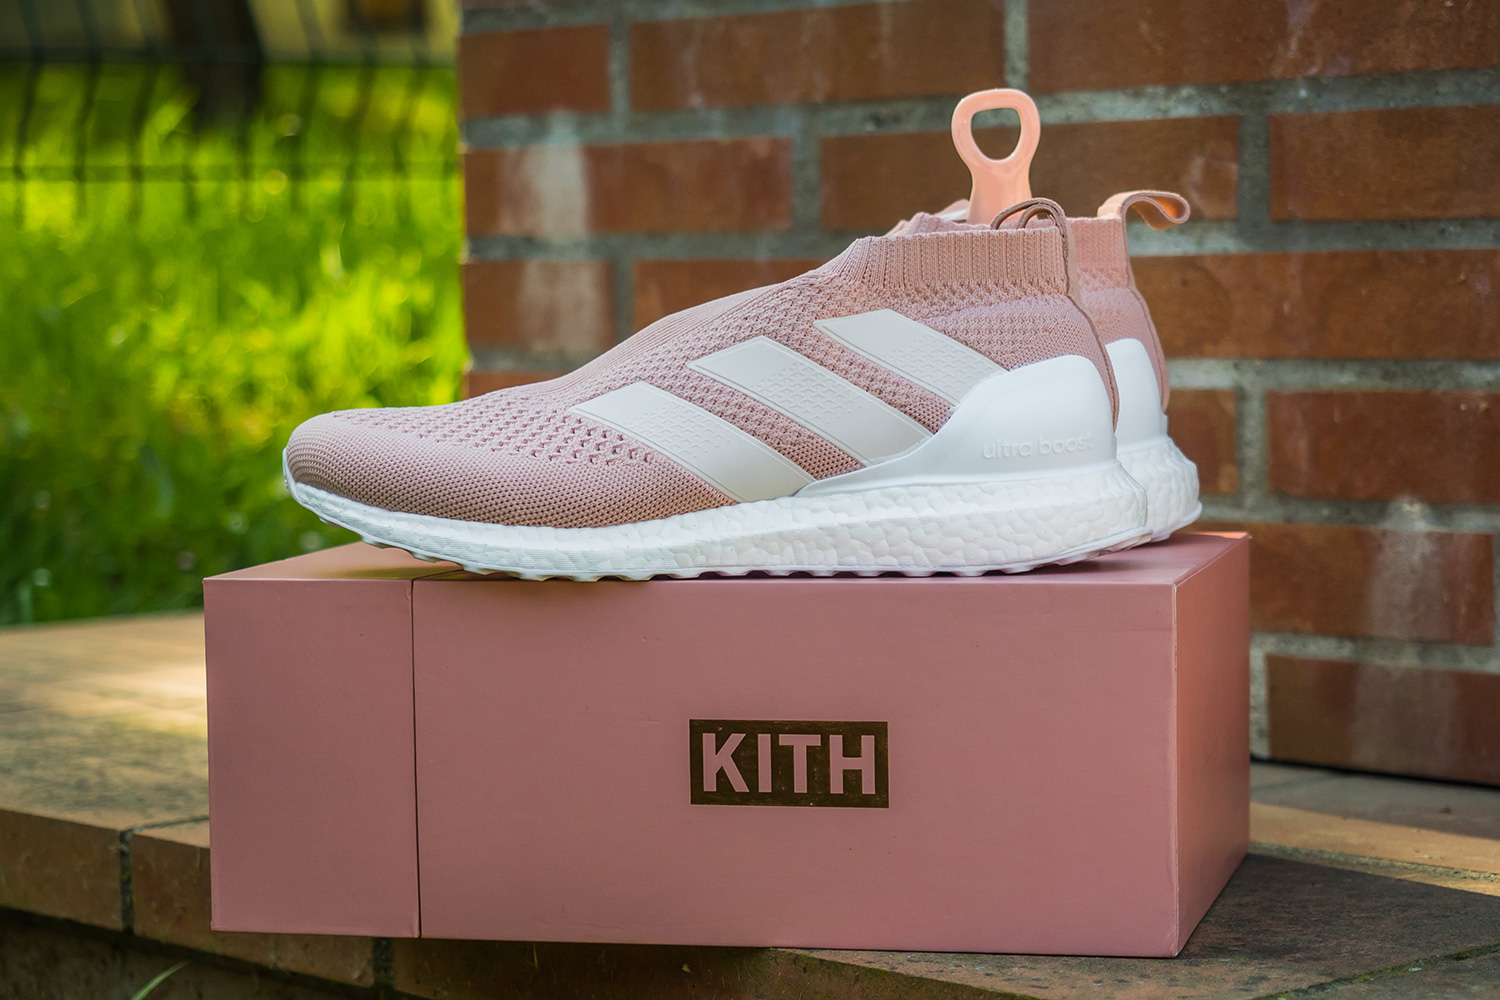 kith-adidas-ace-16-purecontrol-ultra-boost-02